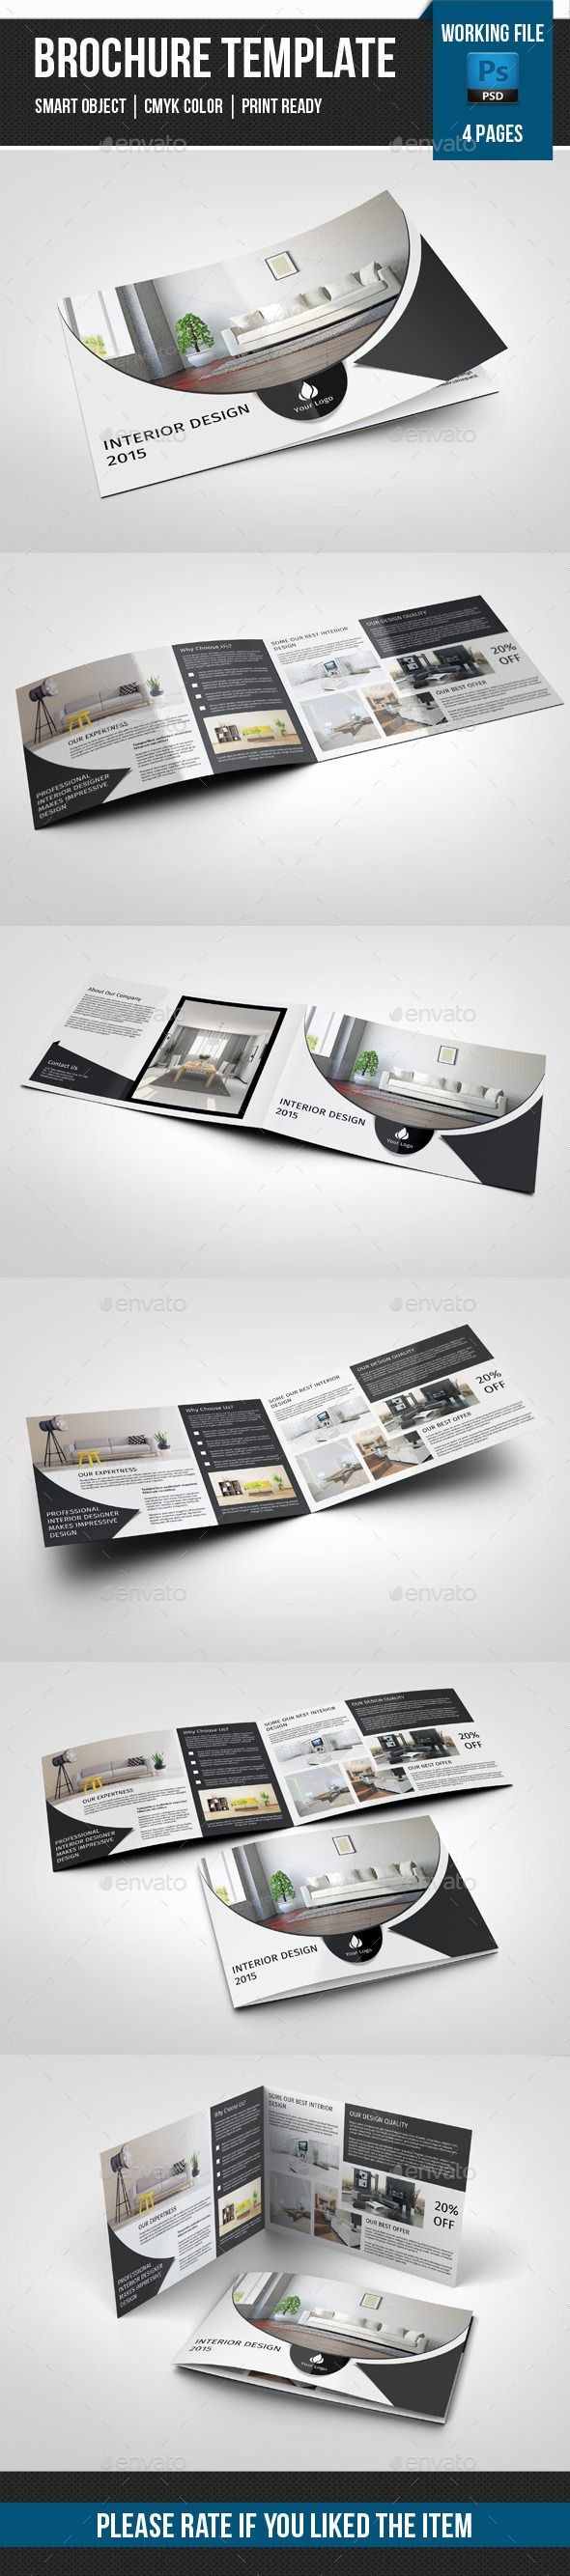 4 Page Landscape Brochure for Interior Design Template. Download: http://graphicriver.net/item/4-page-landscape-brochure-for-interior-designv242/11258311?ref=ksioks